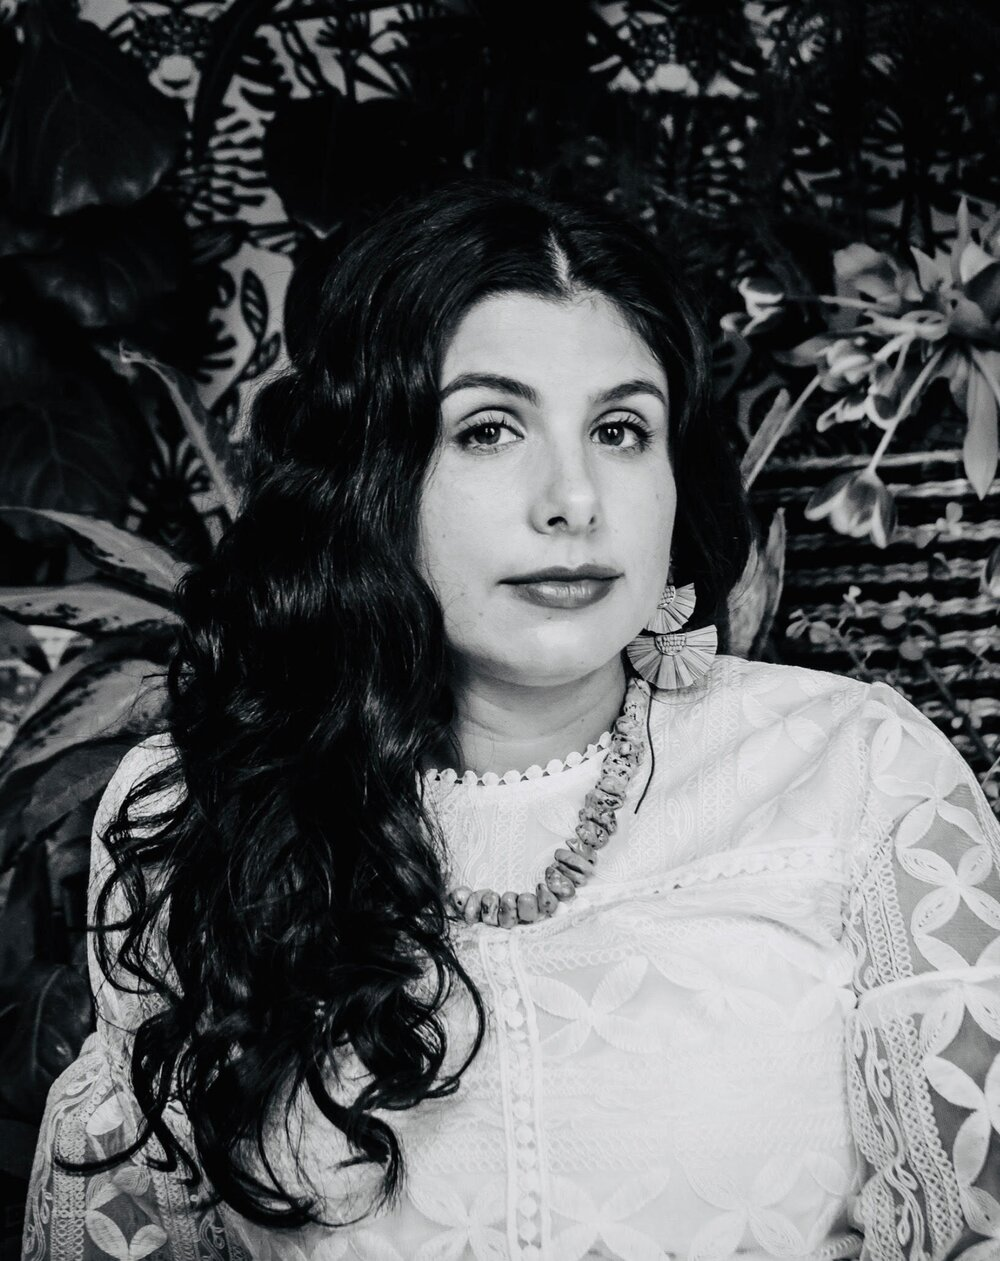 A black and white portrait of Michelle, who looks at the camera. She's wearing a white top and a chunky necklace, and she's standing in front of some plants